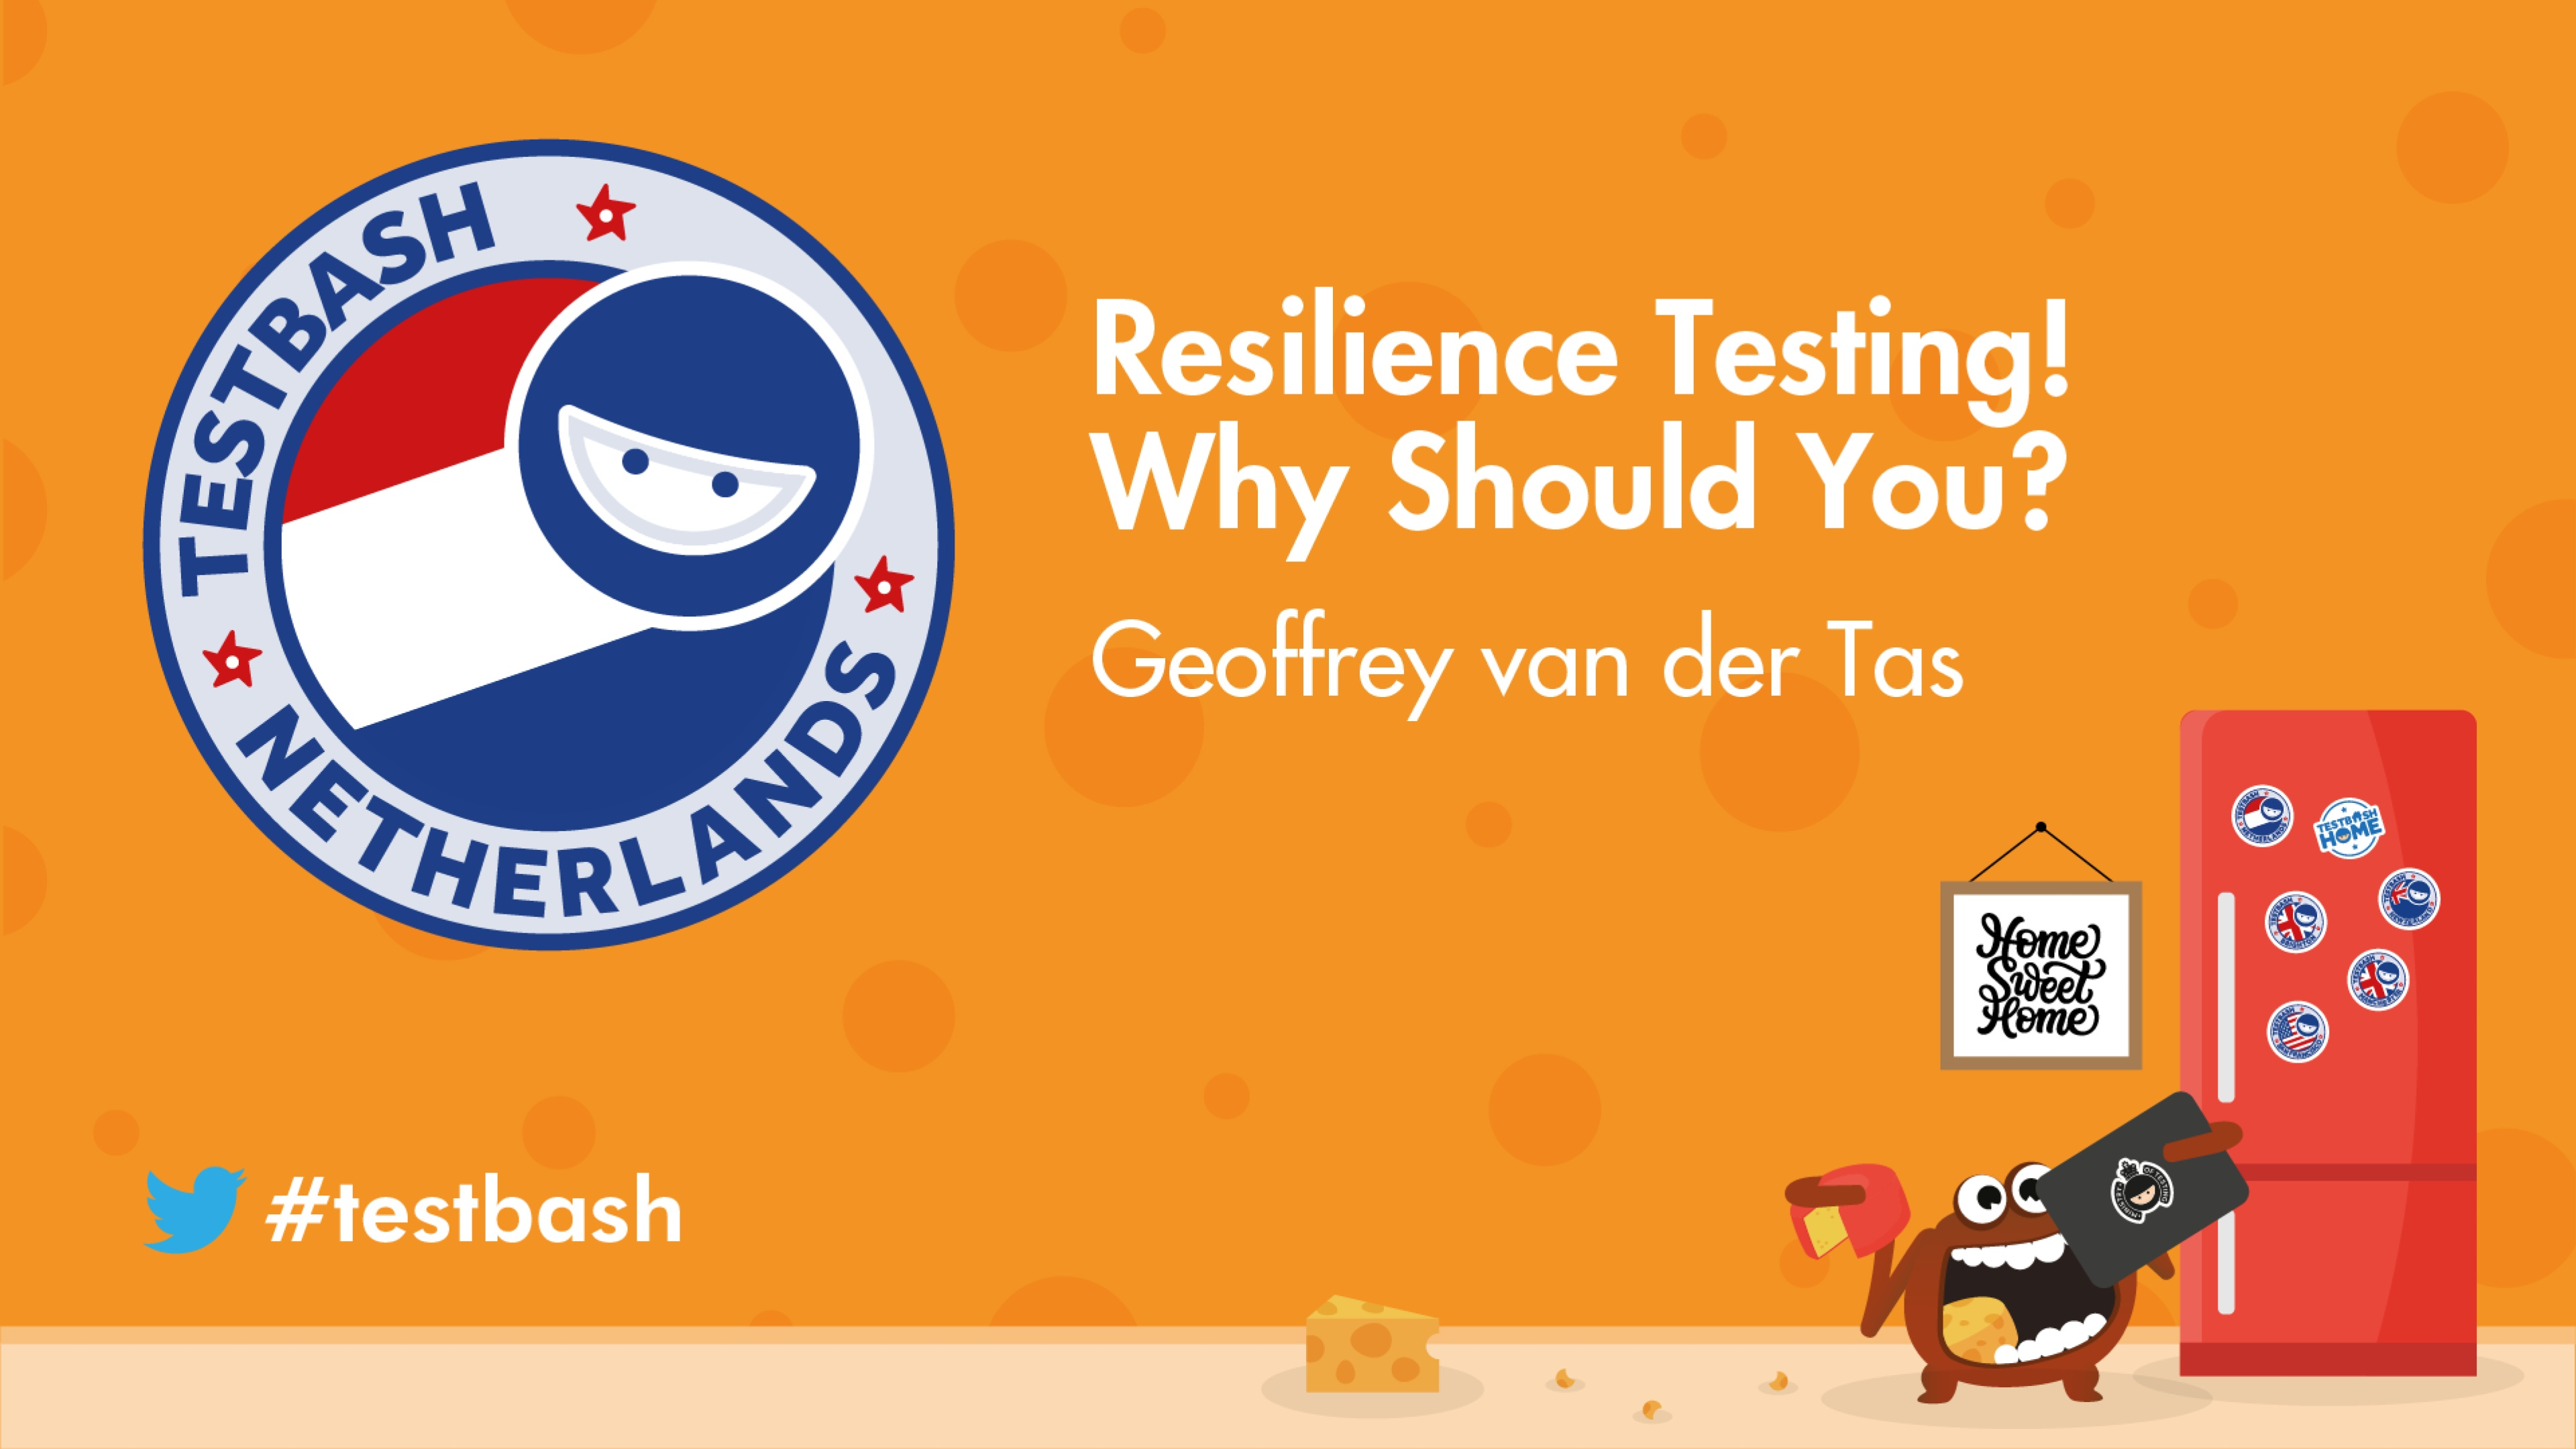 Resilience Testing! Why Should You? - Geoffrey van der Tas